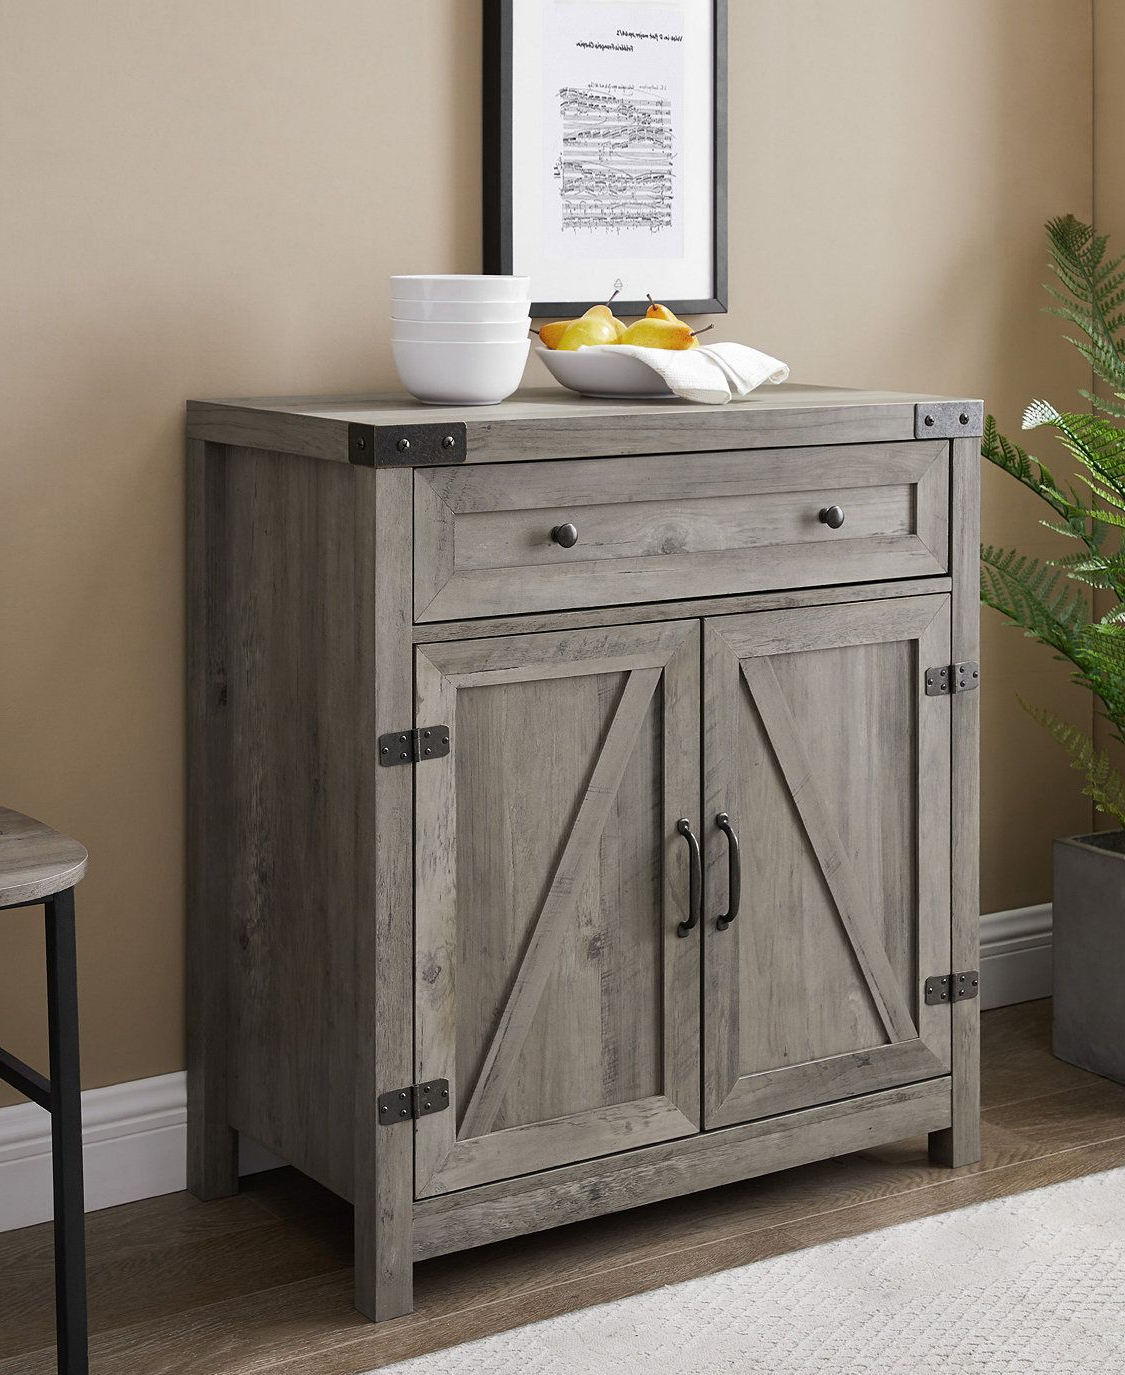 Woven Paths Farmhouse Sliding Barn Door Tv Stands With Multiple Finishes Intended For Favorite Manor Park Farmhouse Barn Door Accent Cabinet Reclaimed (View 9 of 10)